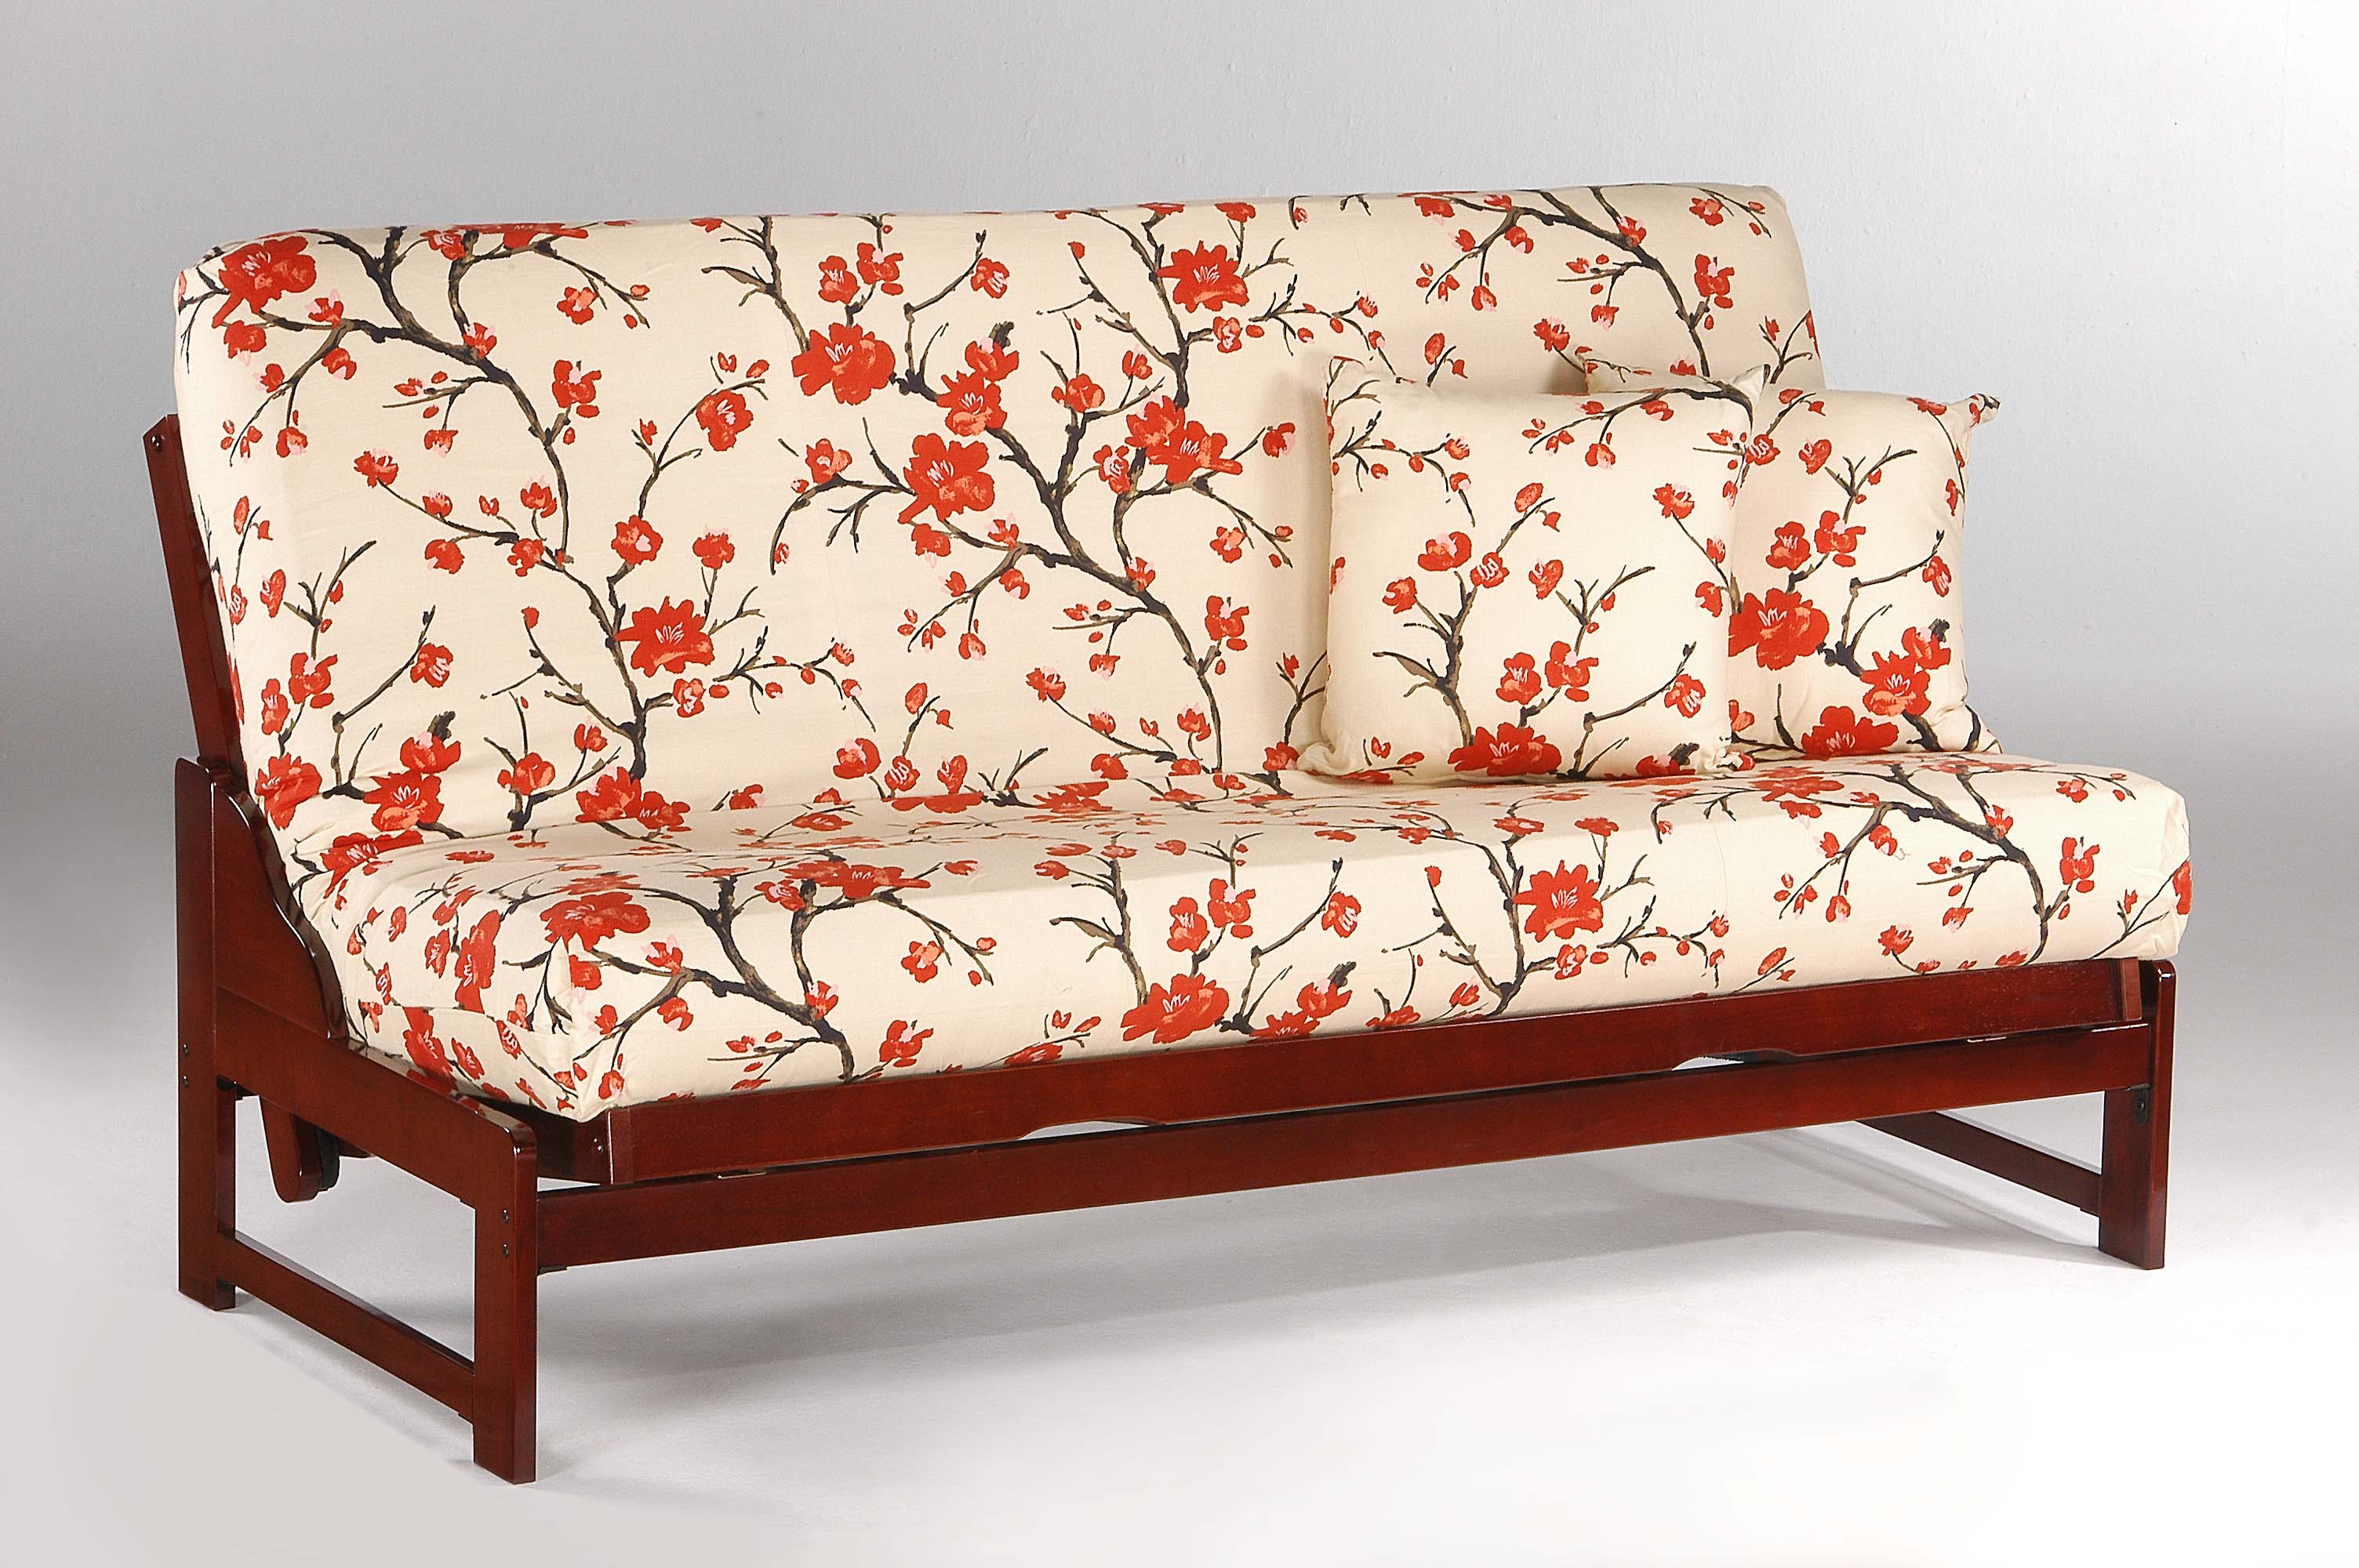 high room this sofa set back frame inspirational tufted pin includes and wingback features loveseat living which wood